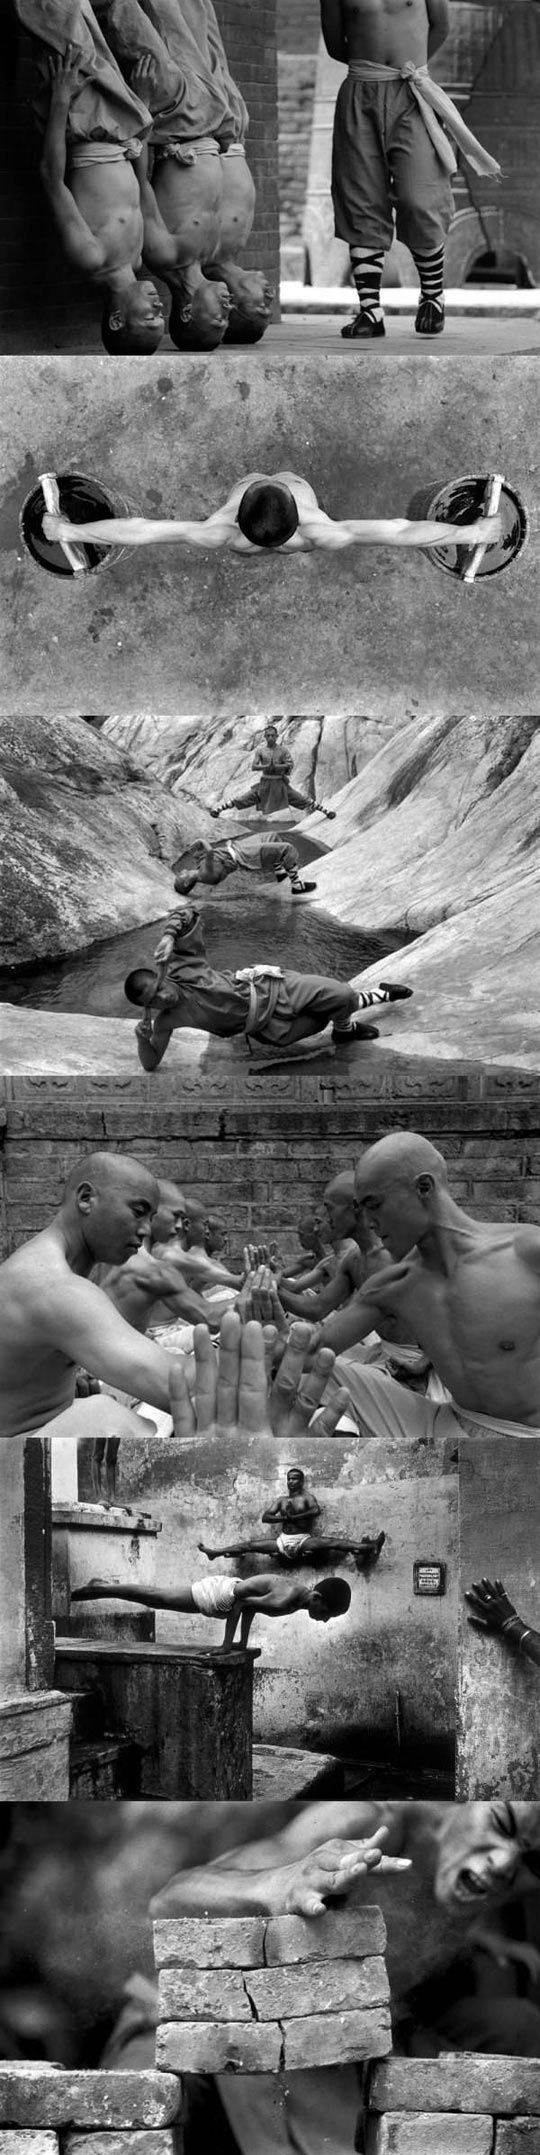 How Shaolin Monks Train For Martial Arts - aplicando principios de Yoga! Excelente!